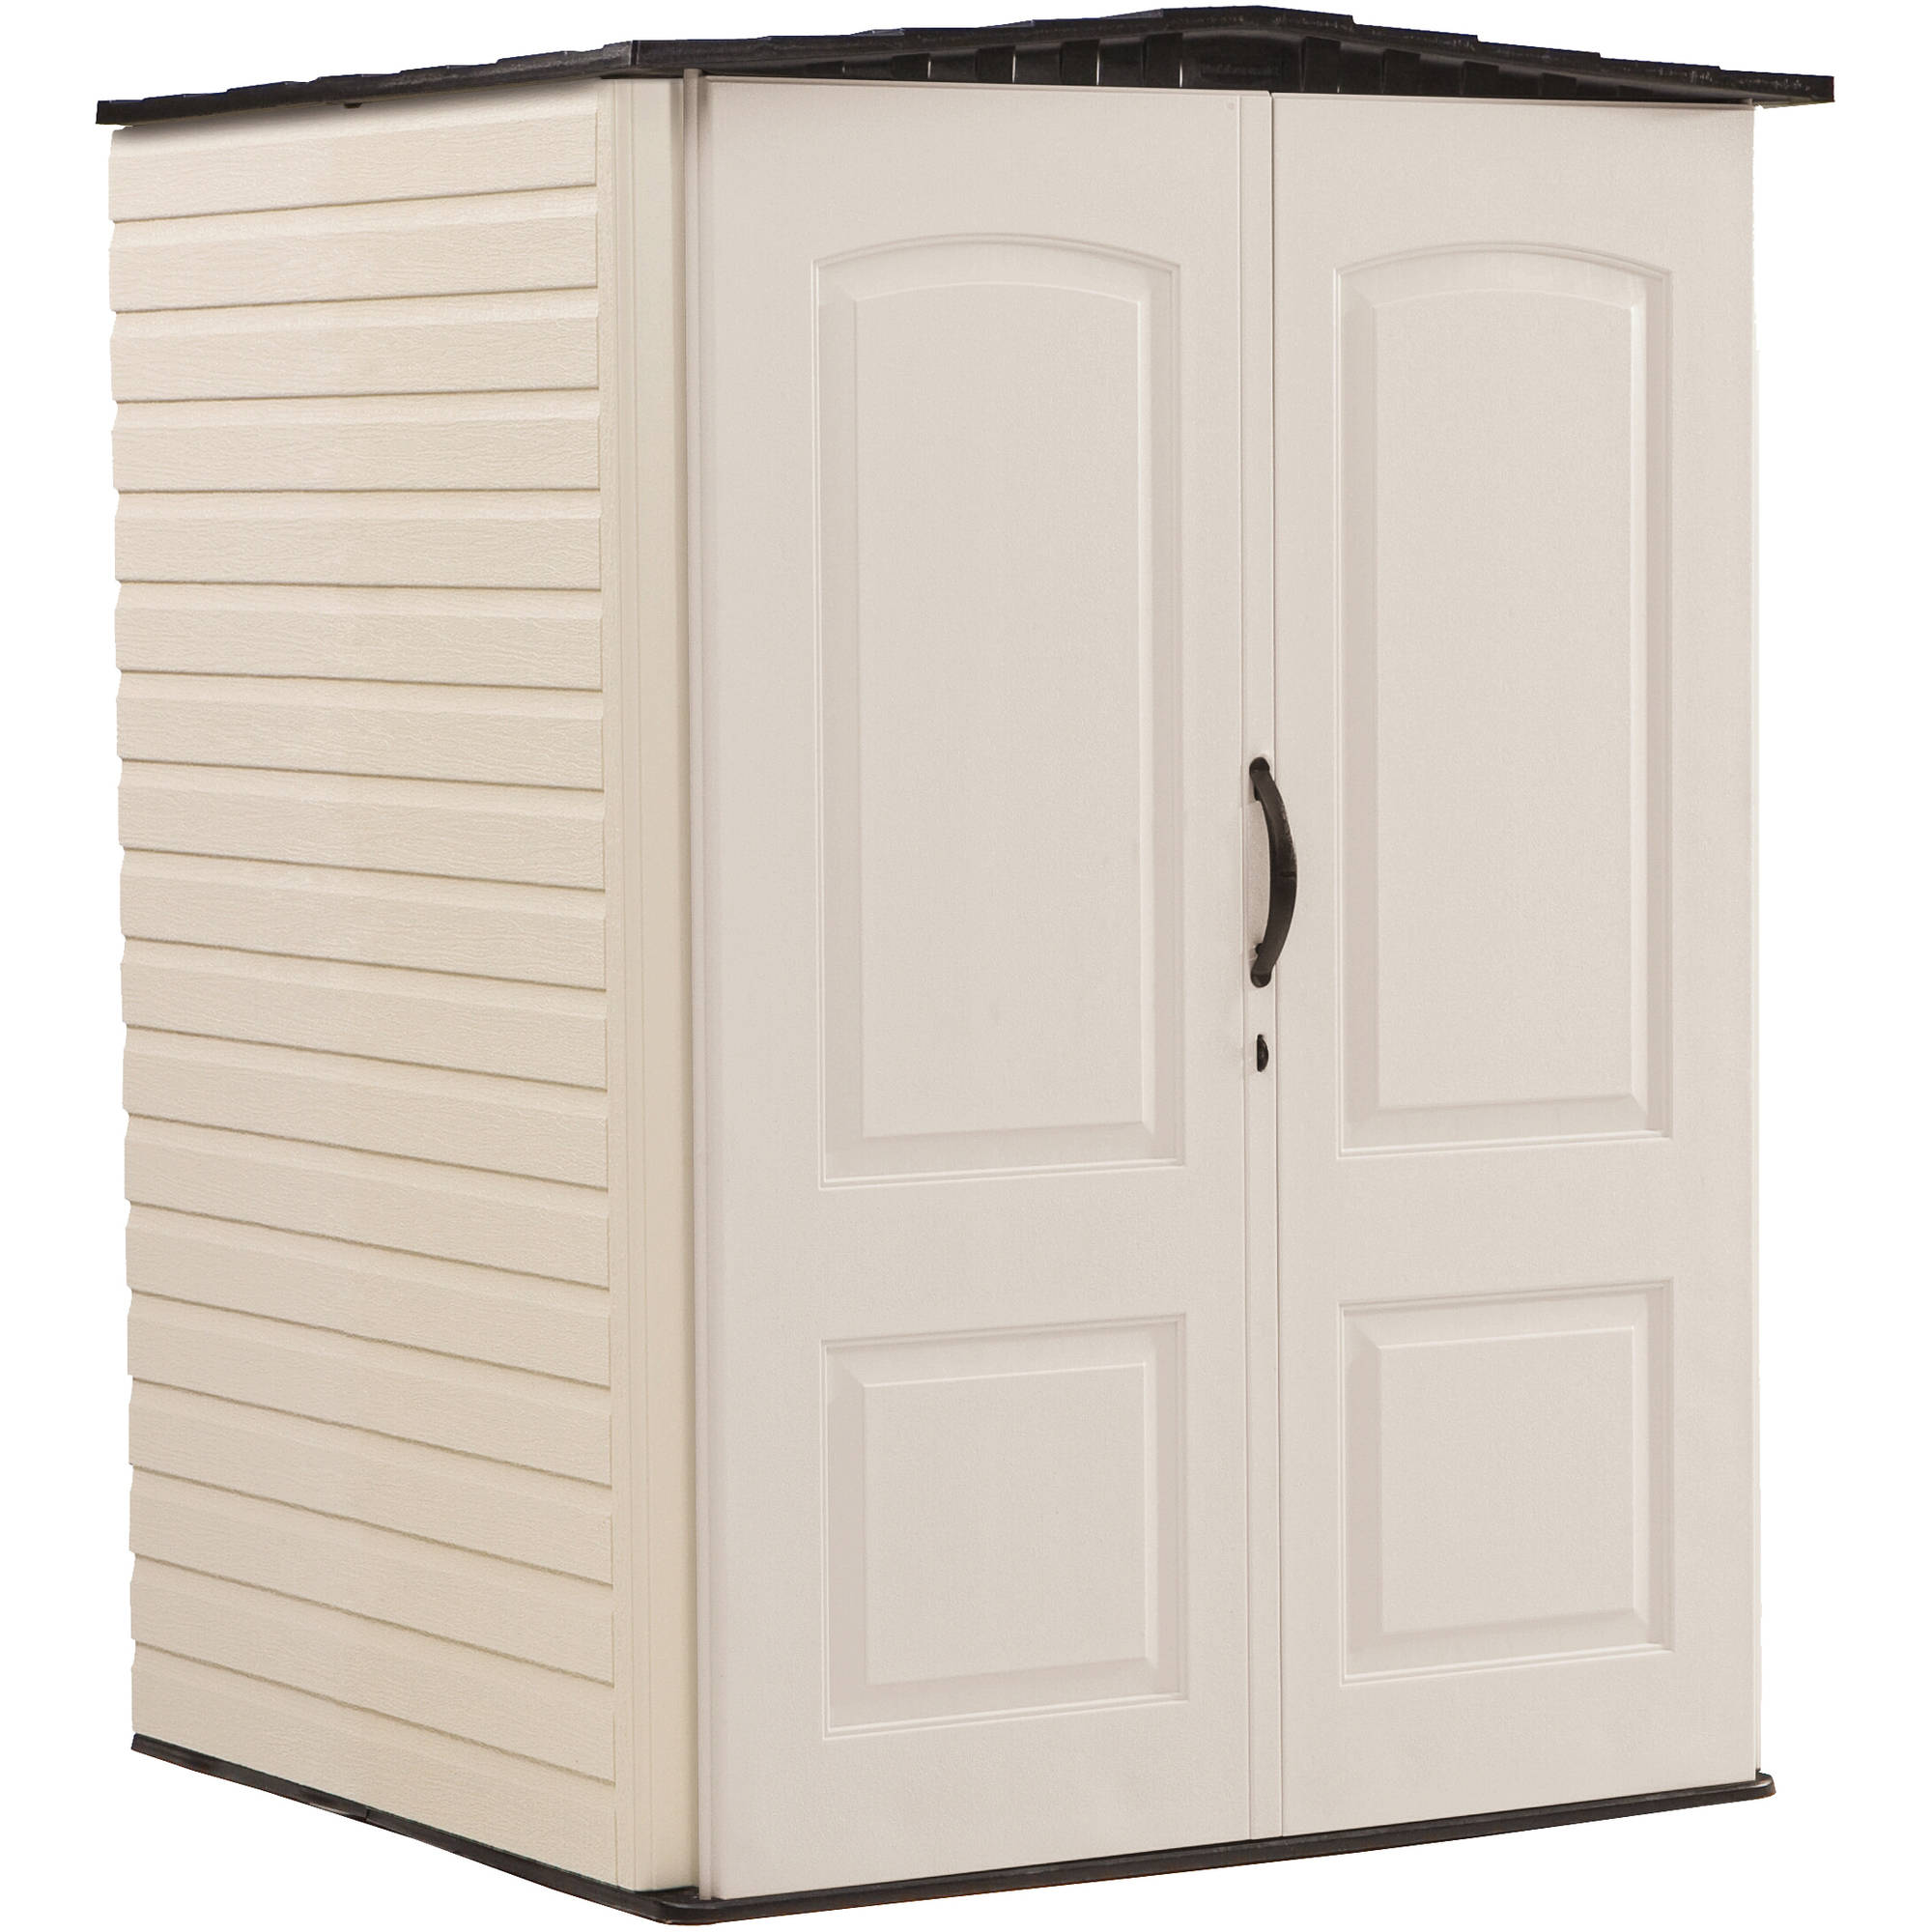 unique garden sheds kits menards build kitwoodwork patterns on